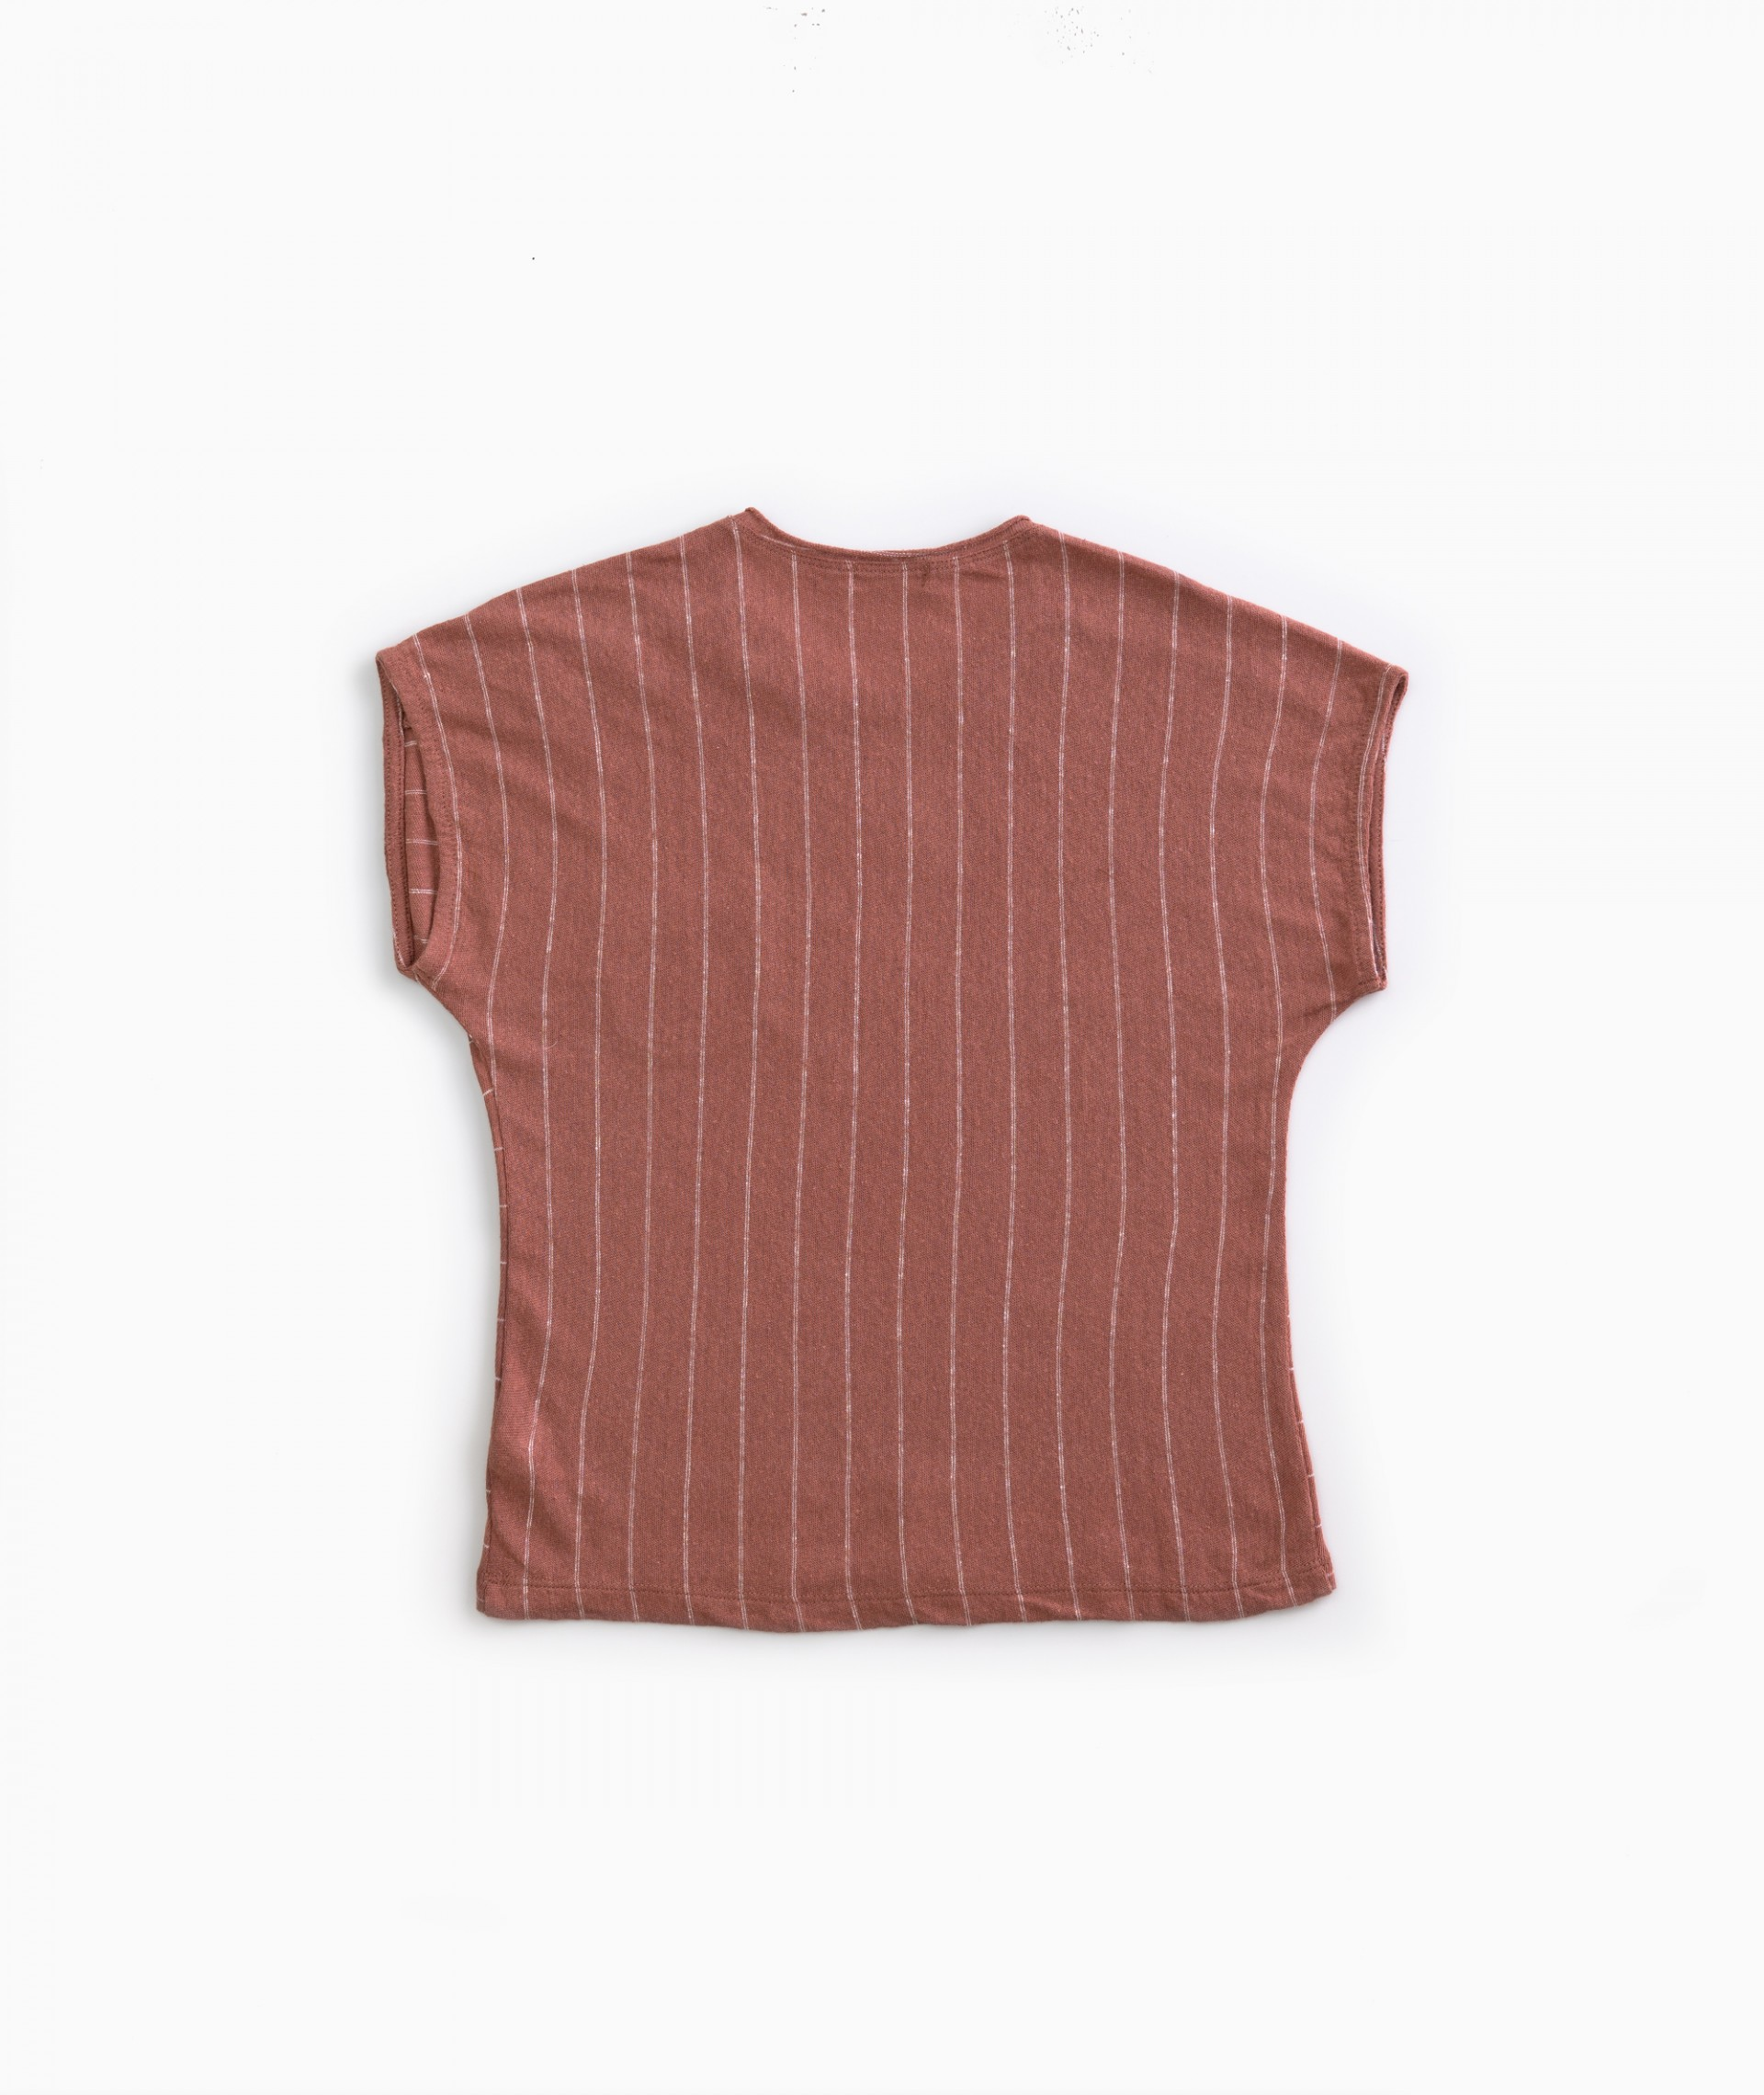 T-shirt cotton-linen | Weaving